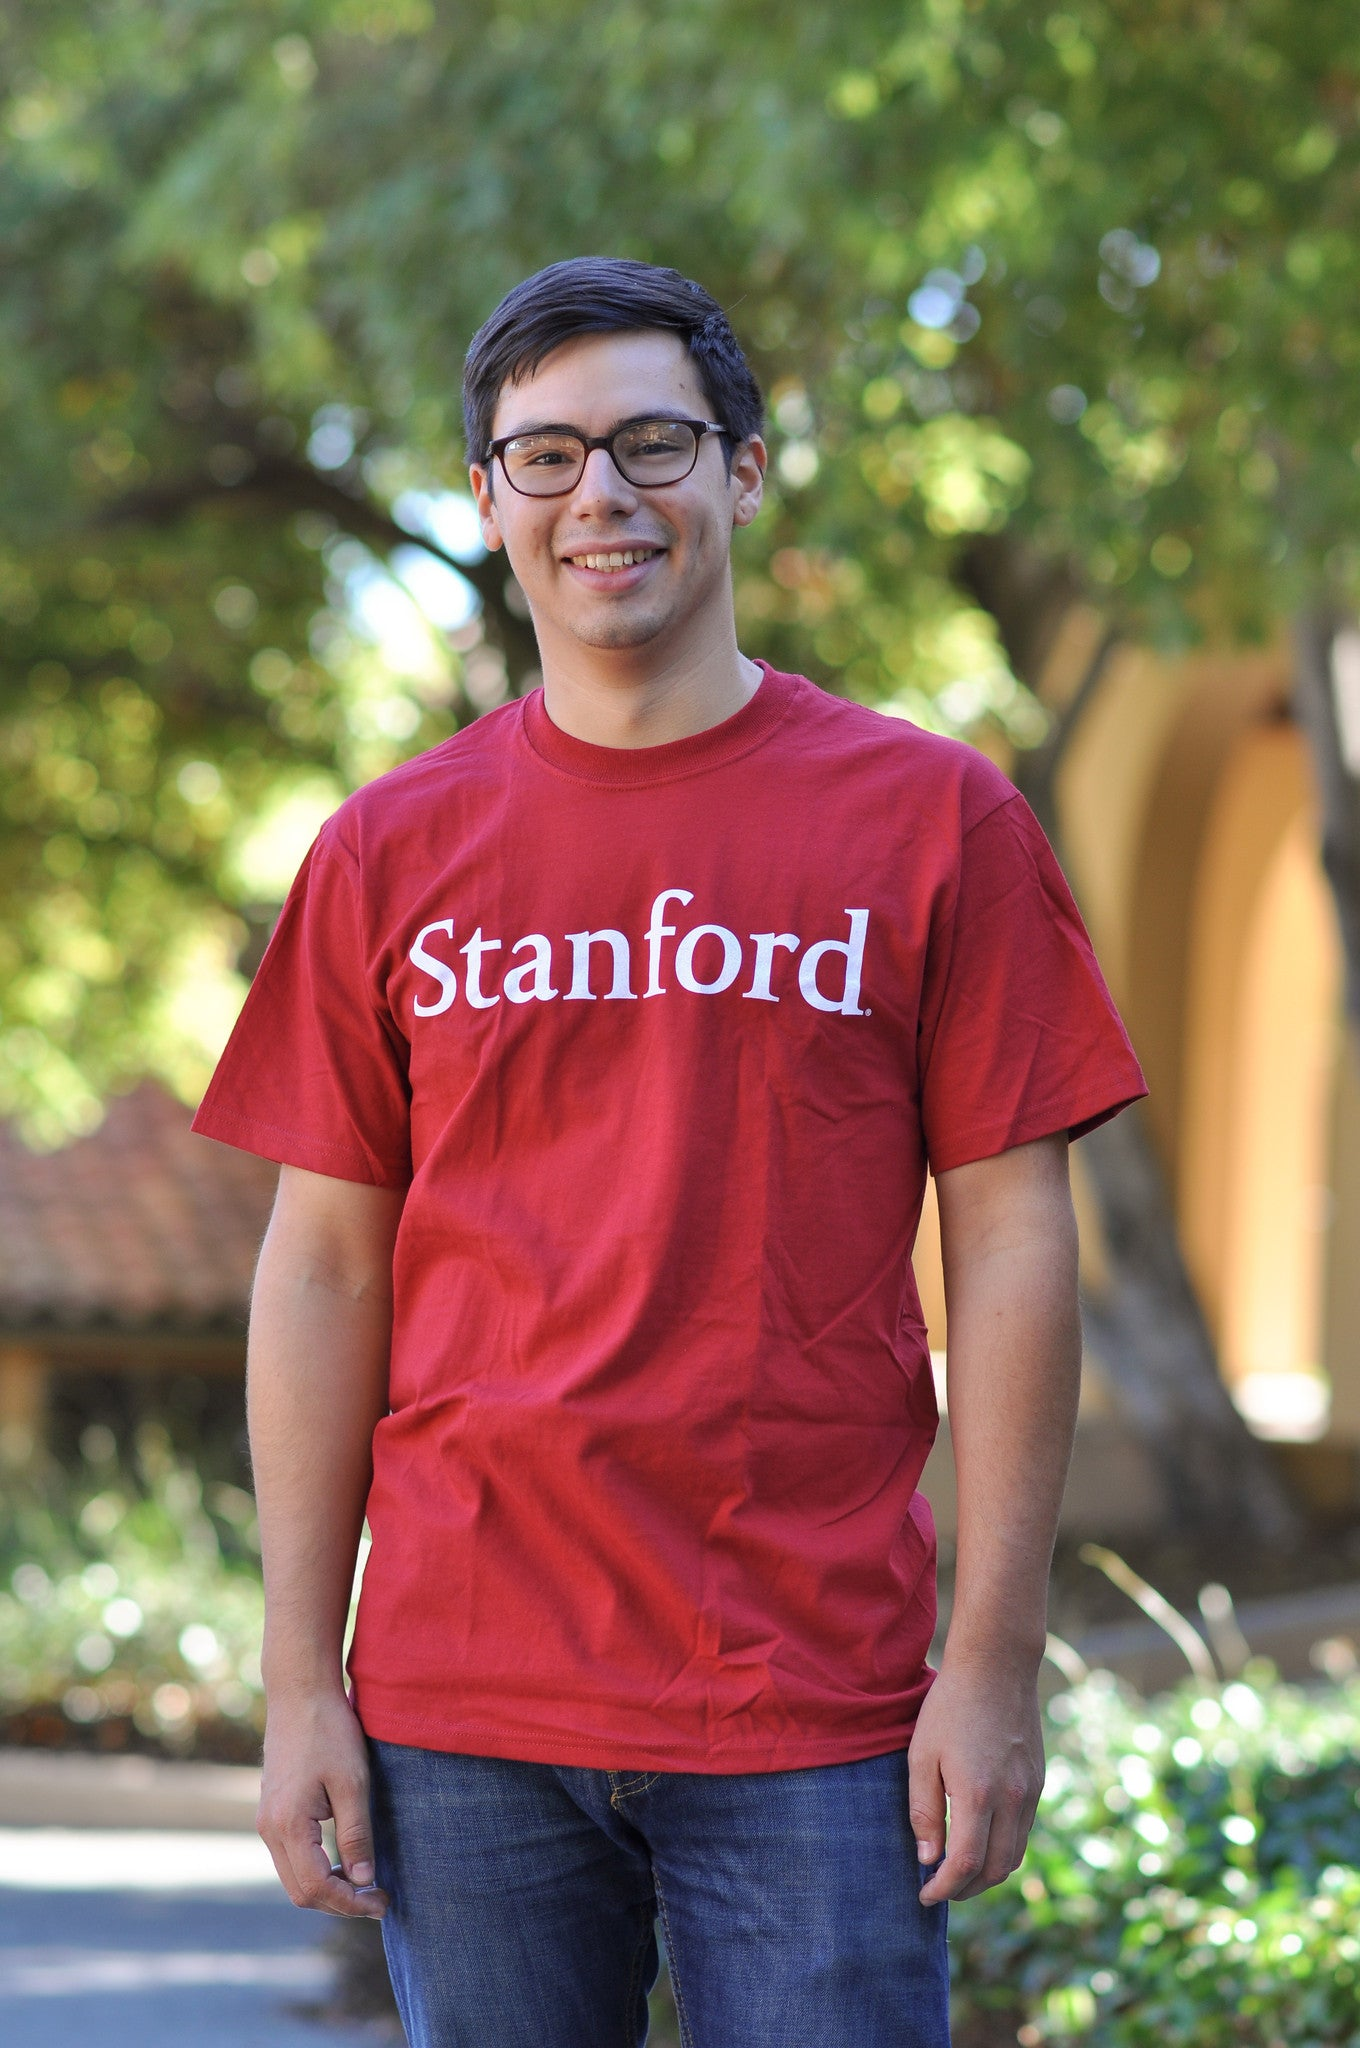 Modern Stanford Tee - Stanford Student Store